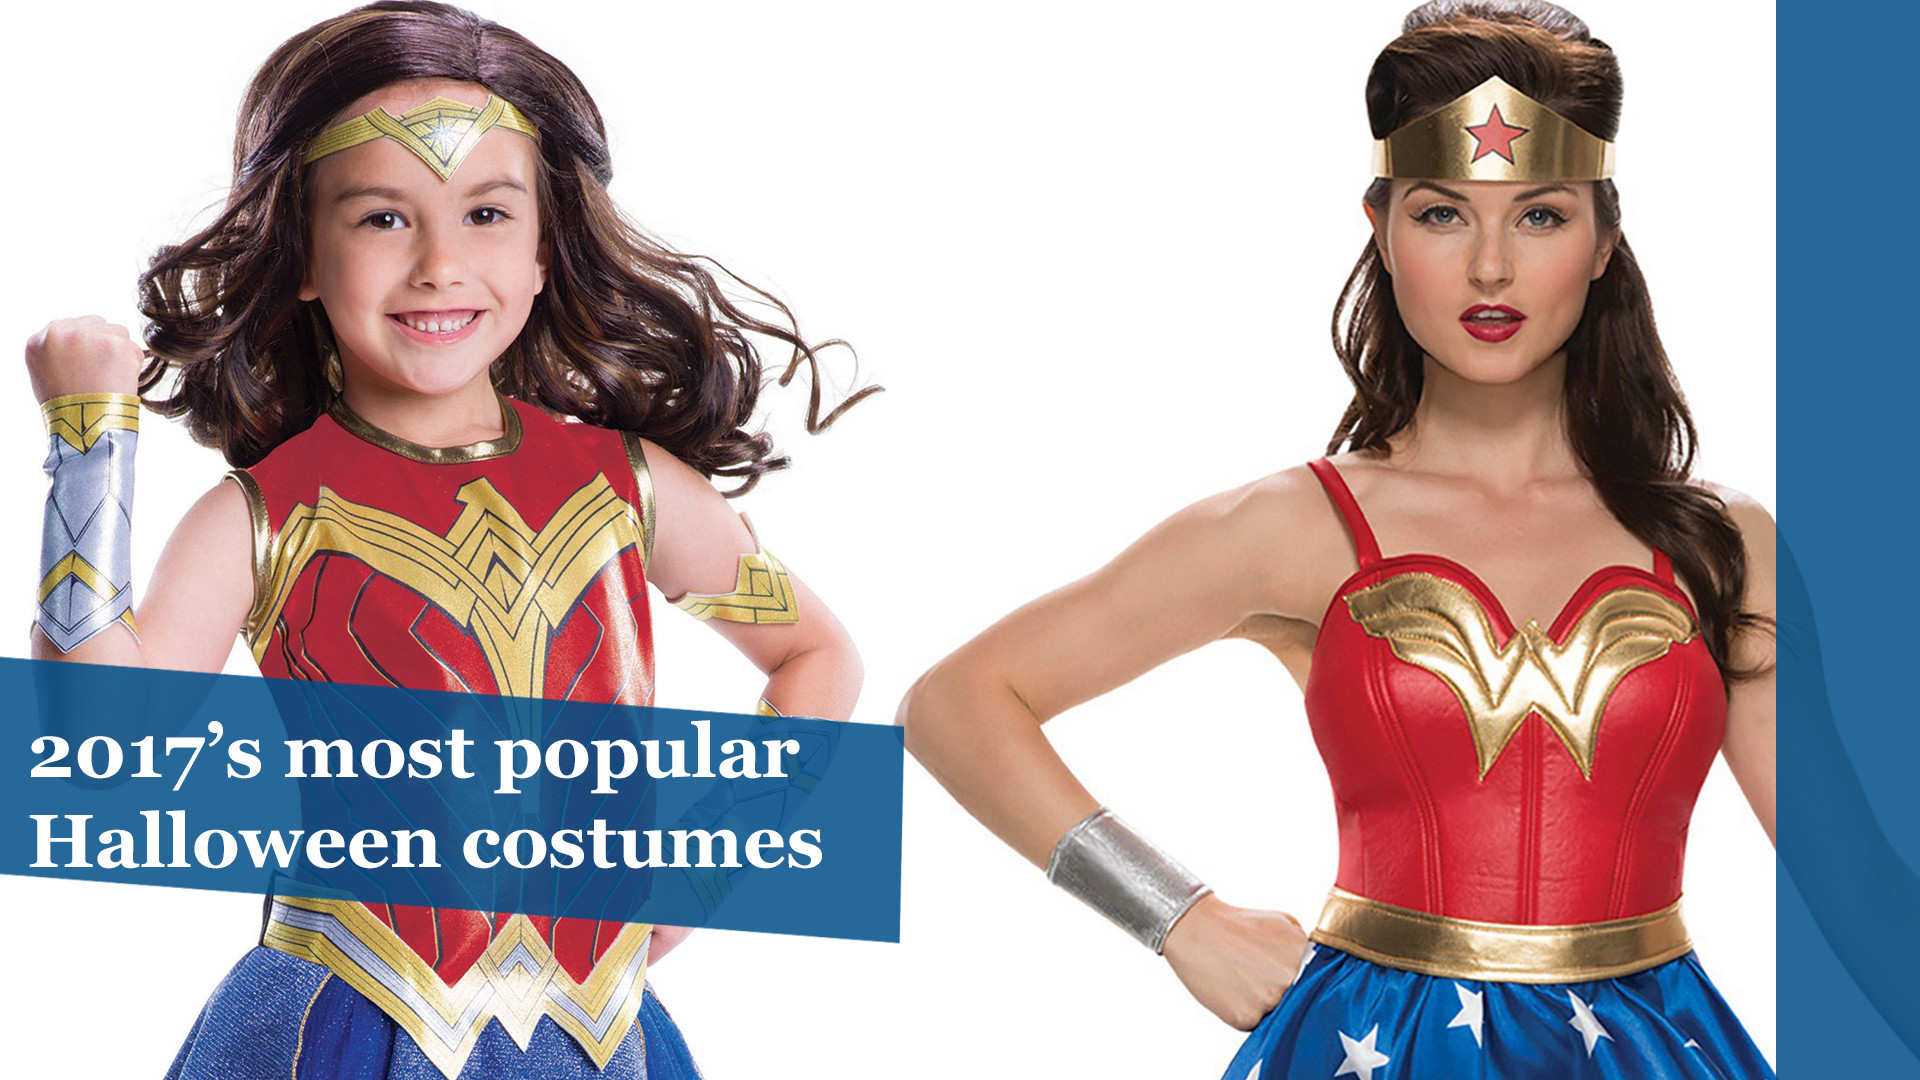 sc 1 st  Chicago Tribune & Most popular Halloween costumes of 2017 - Chicago Tribune